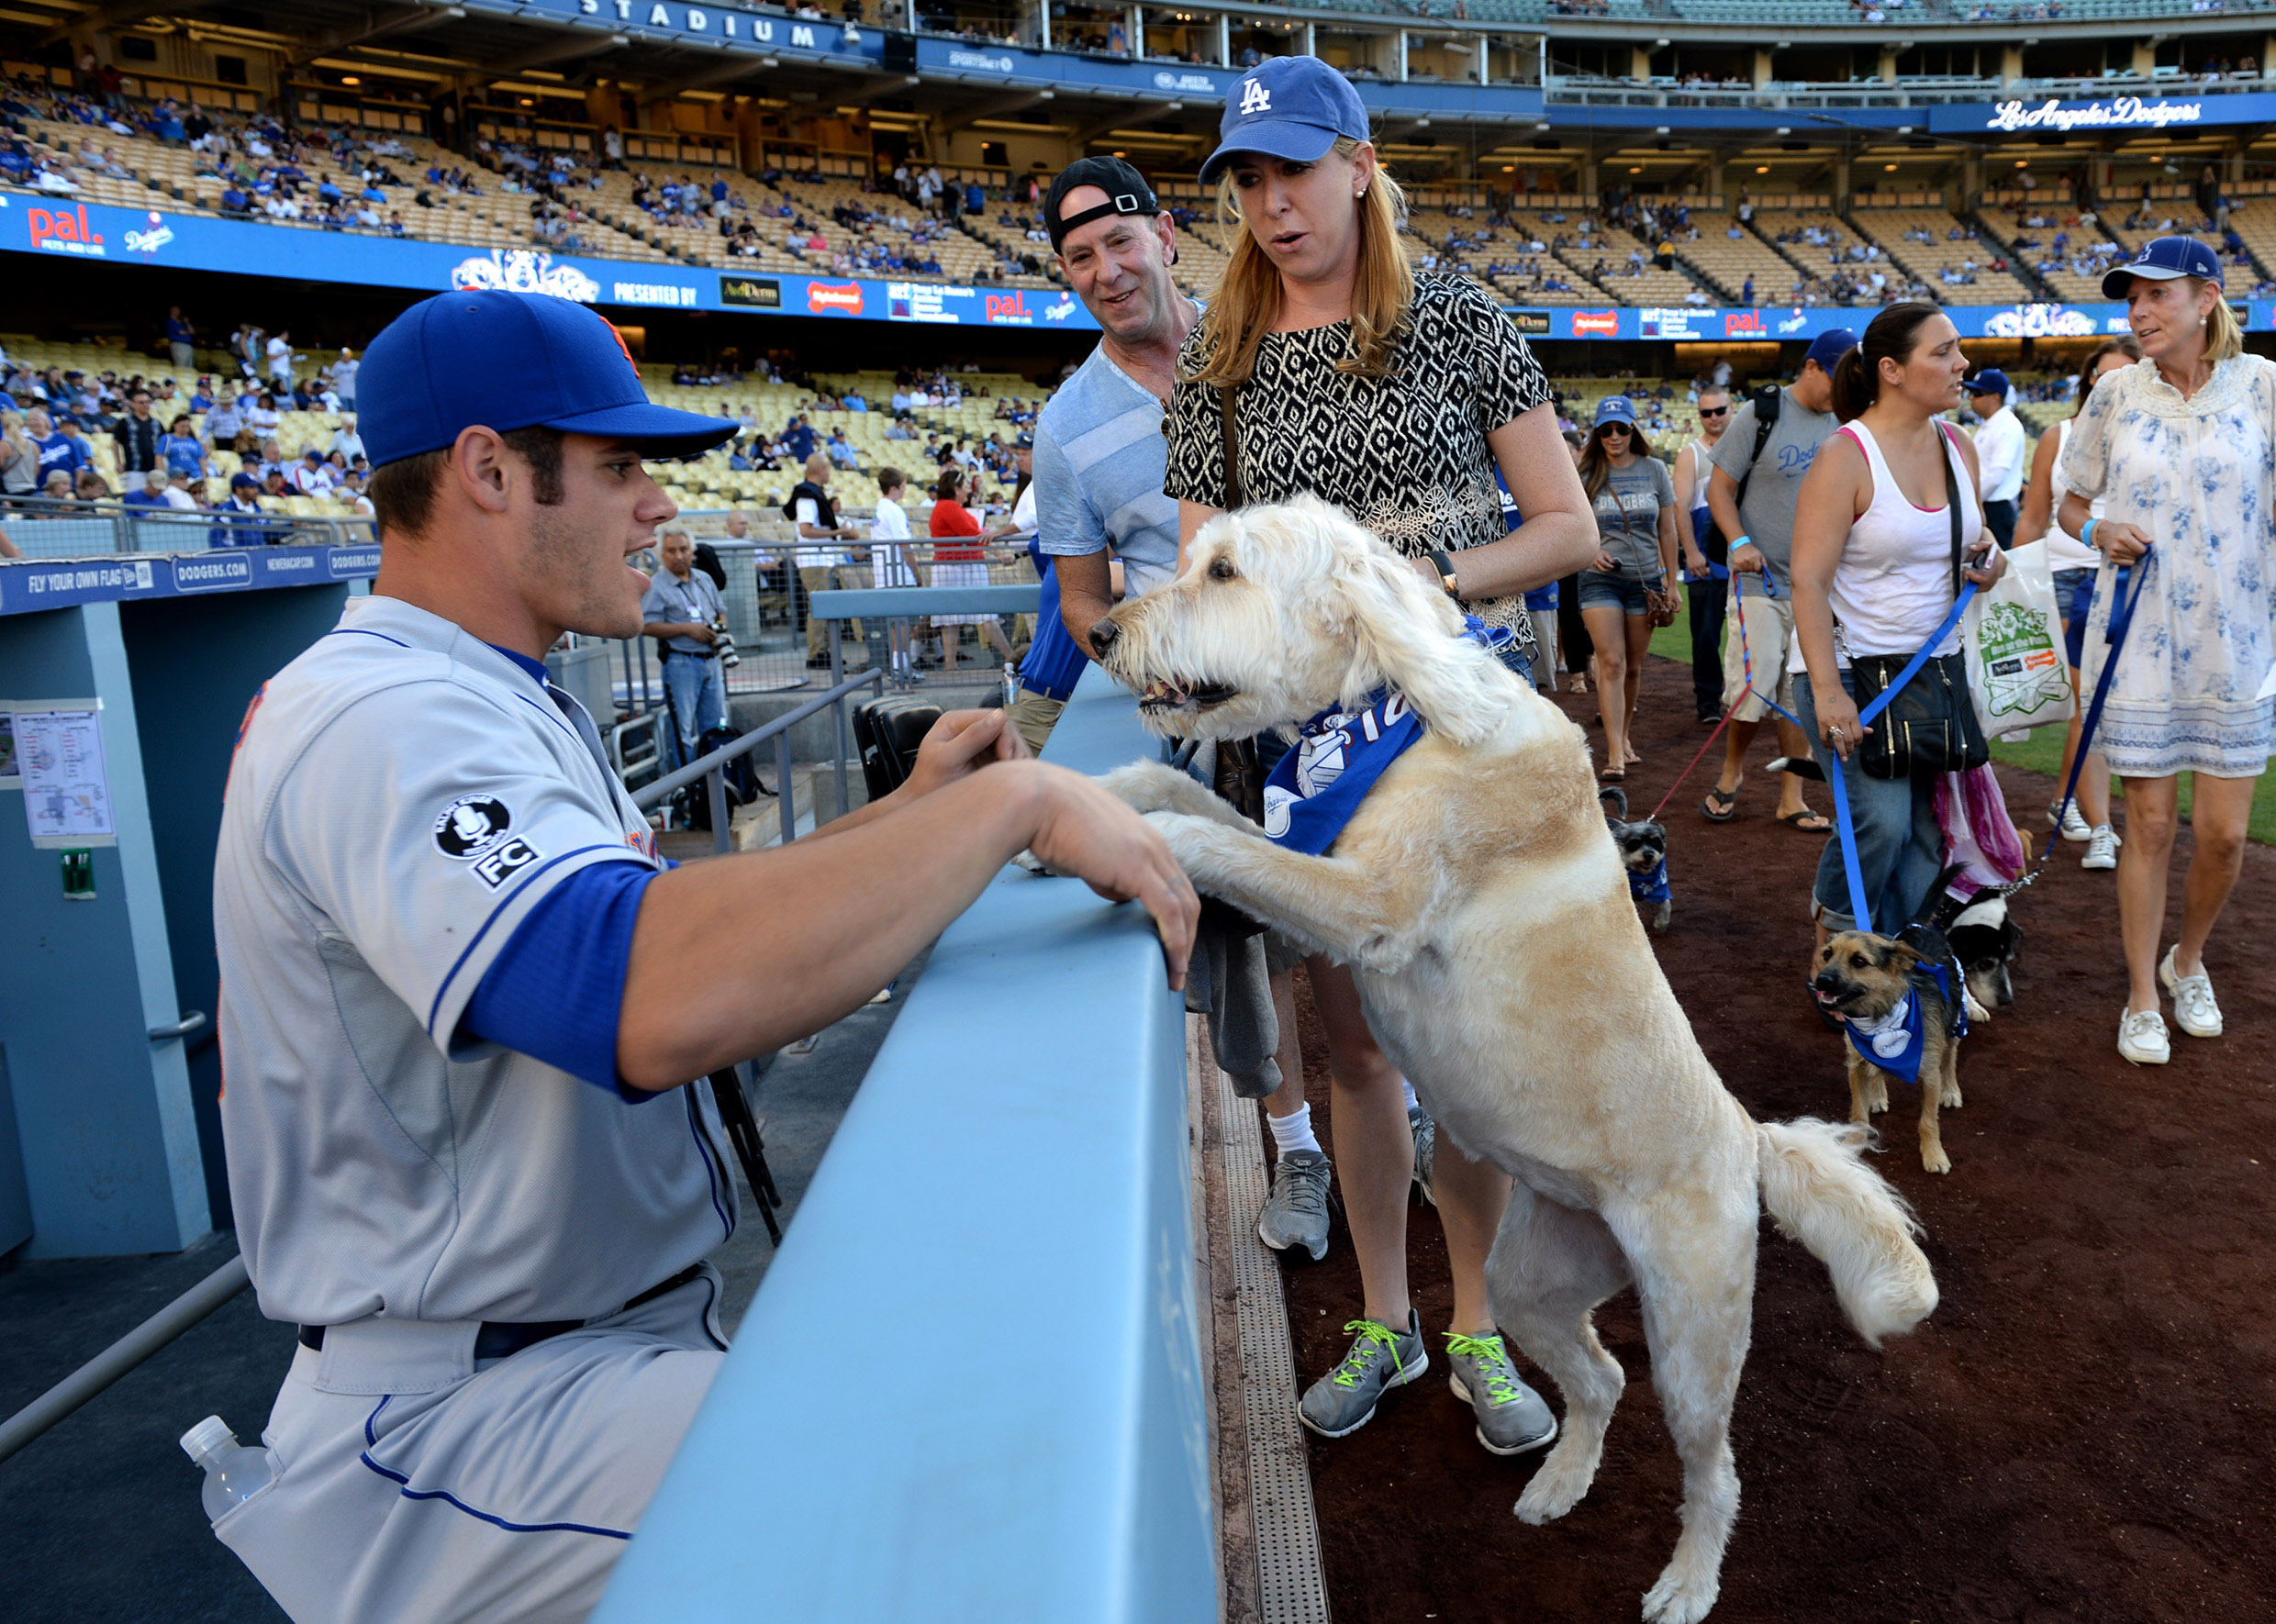 If the Dodgers play the Mets in the NLDS, who is the underdog?